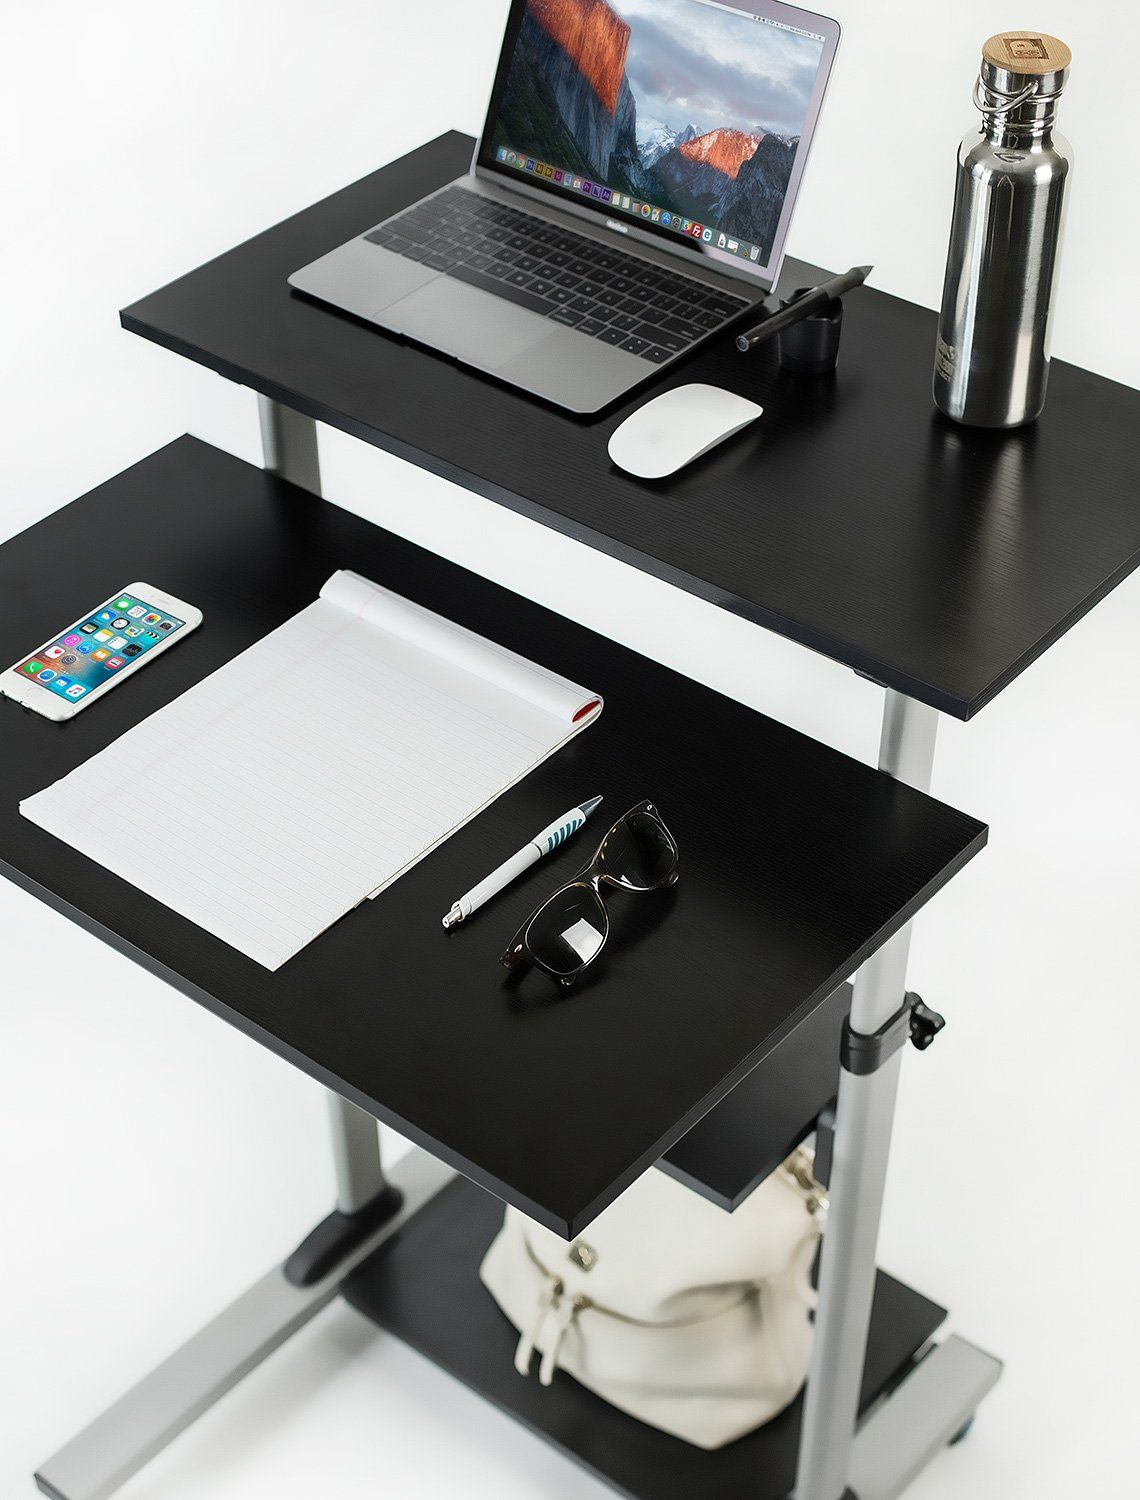 Mountit mobile stand up desk height adjustable computer work